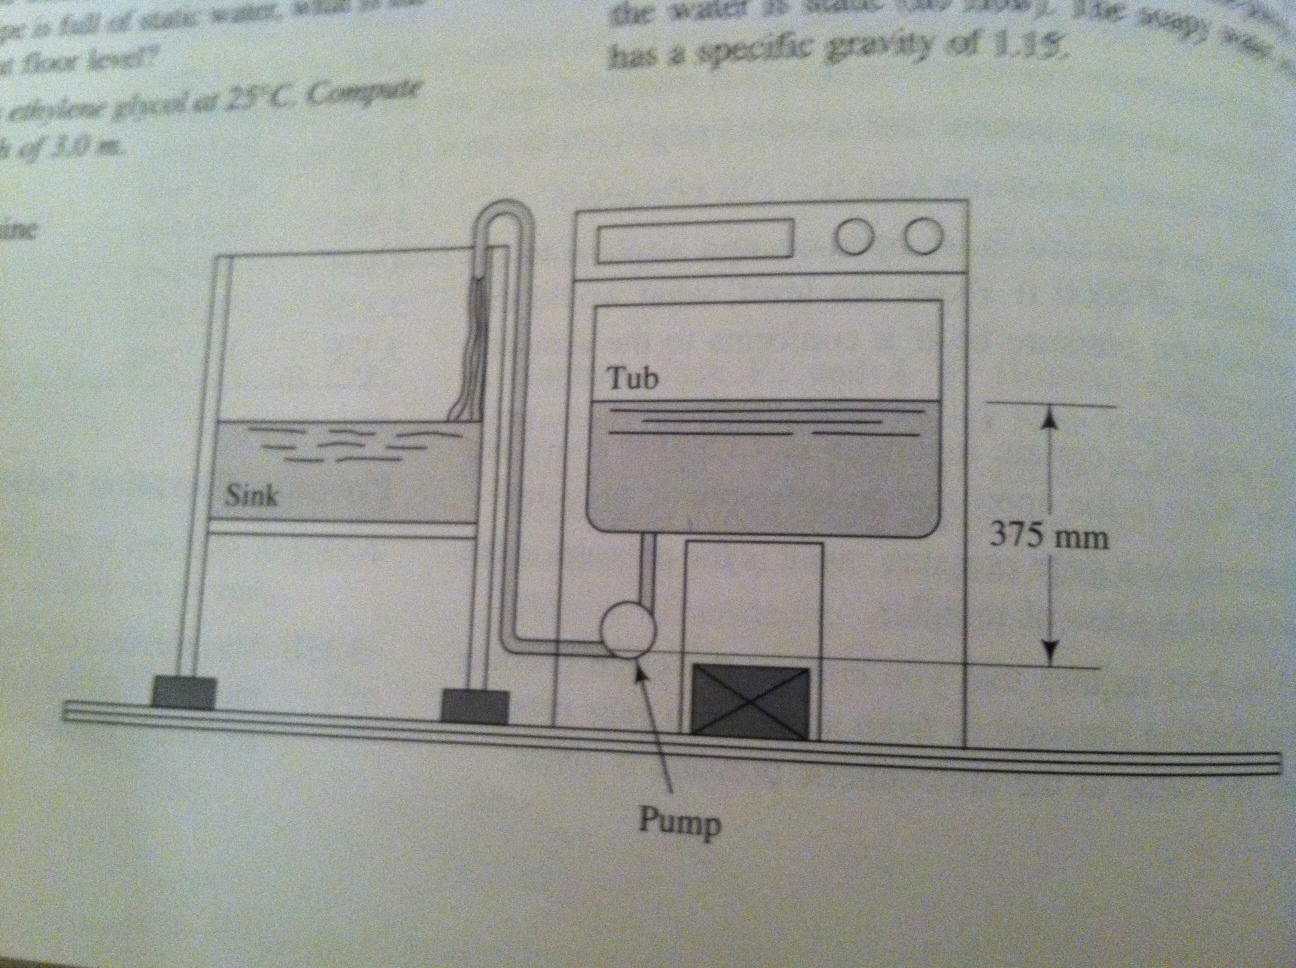 Figure 3.21 shows a clothes washing machine. The p